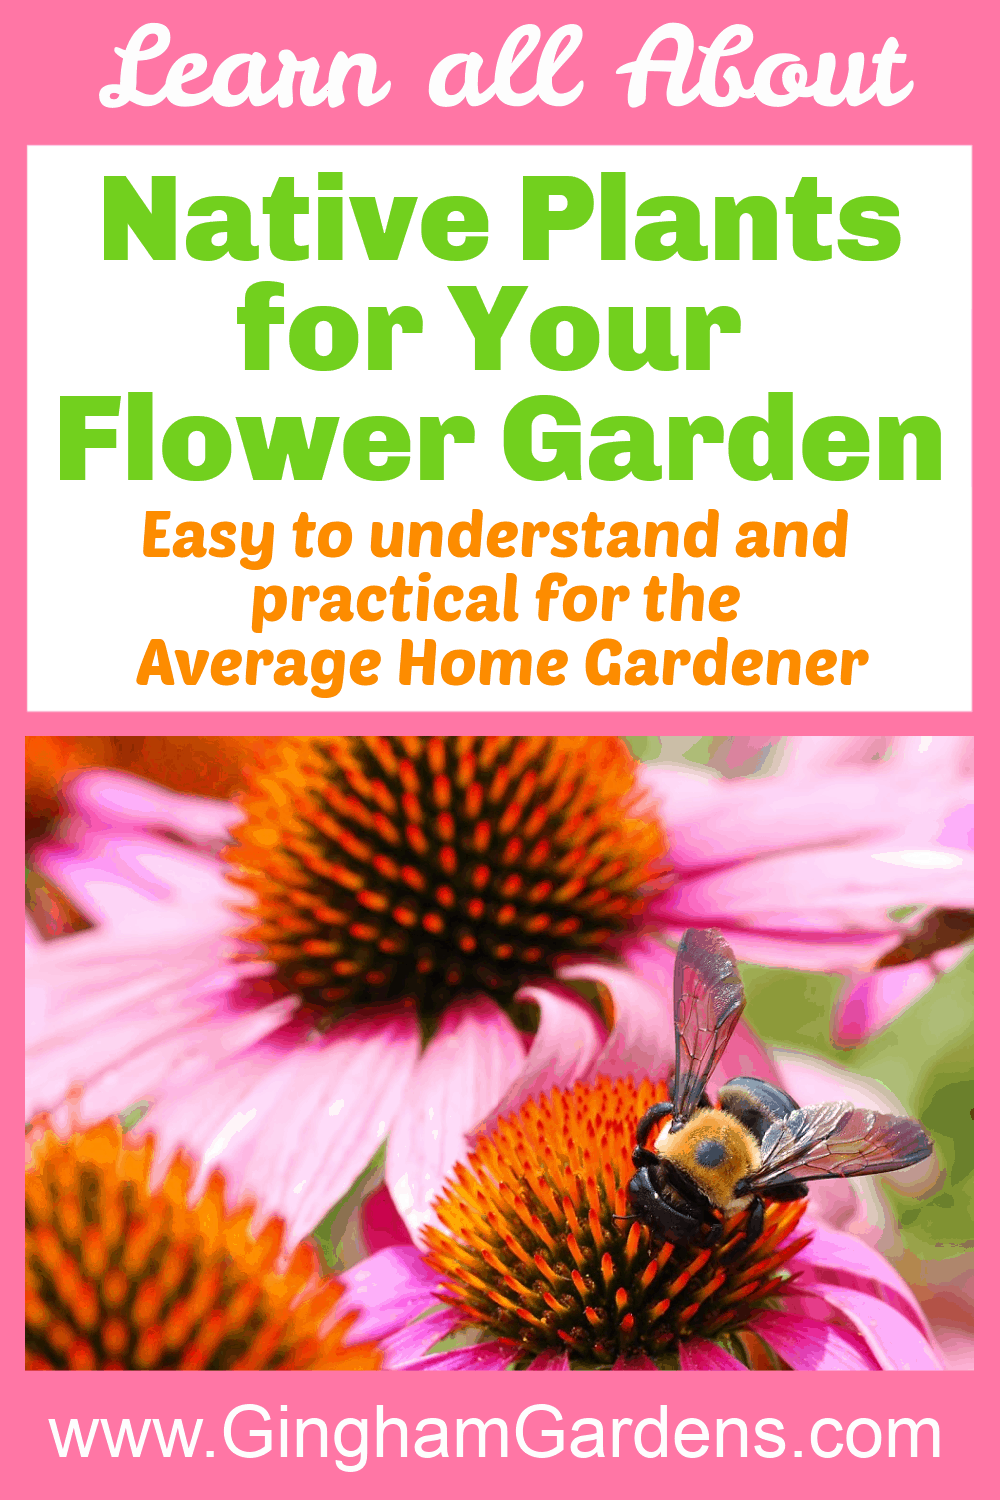 Image of Flowers with a Bee with text overlay - Learn all about Native Plants for Your Flower Garden